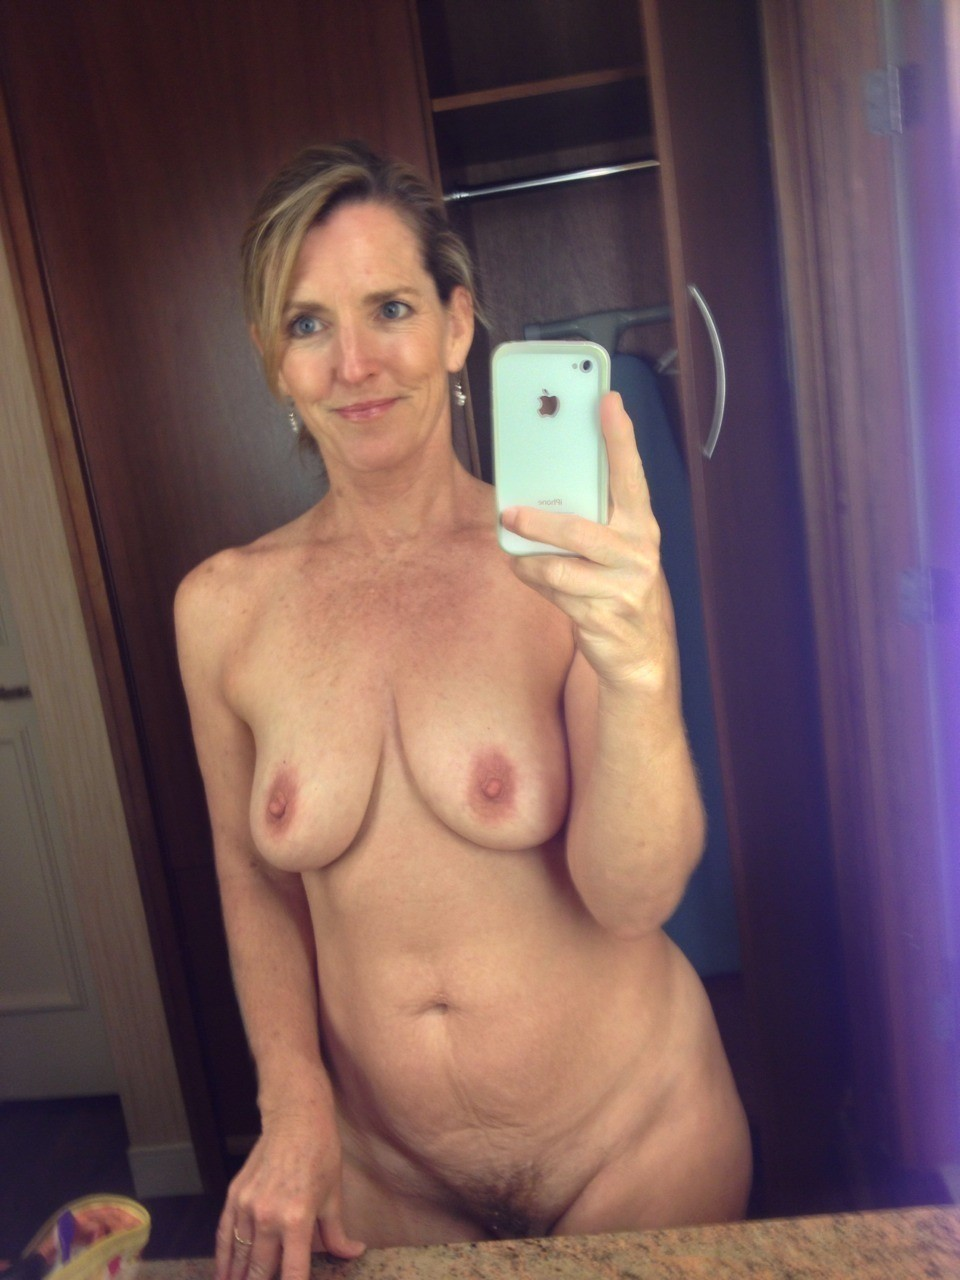 Good concept mature nude selfies need